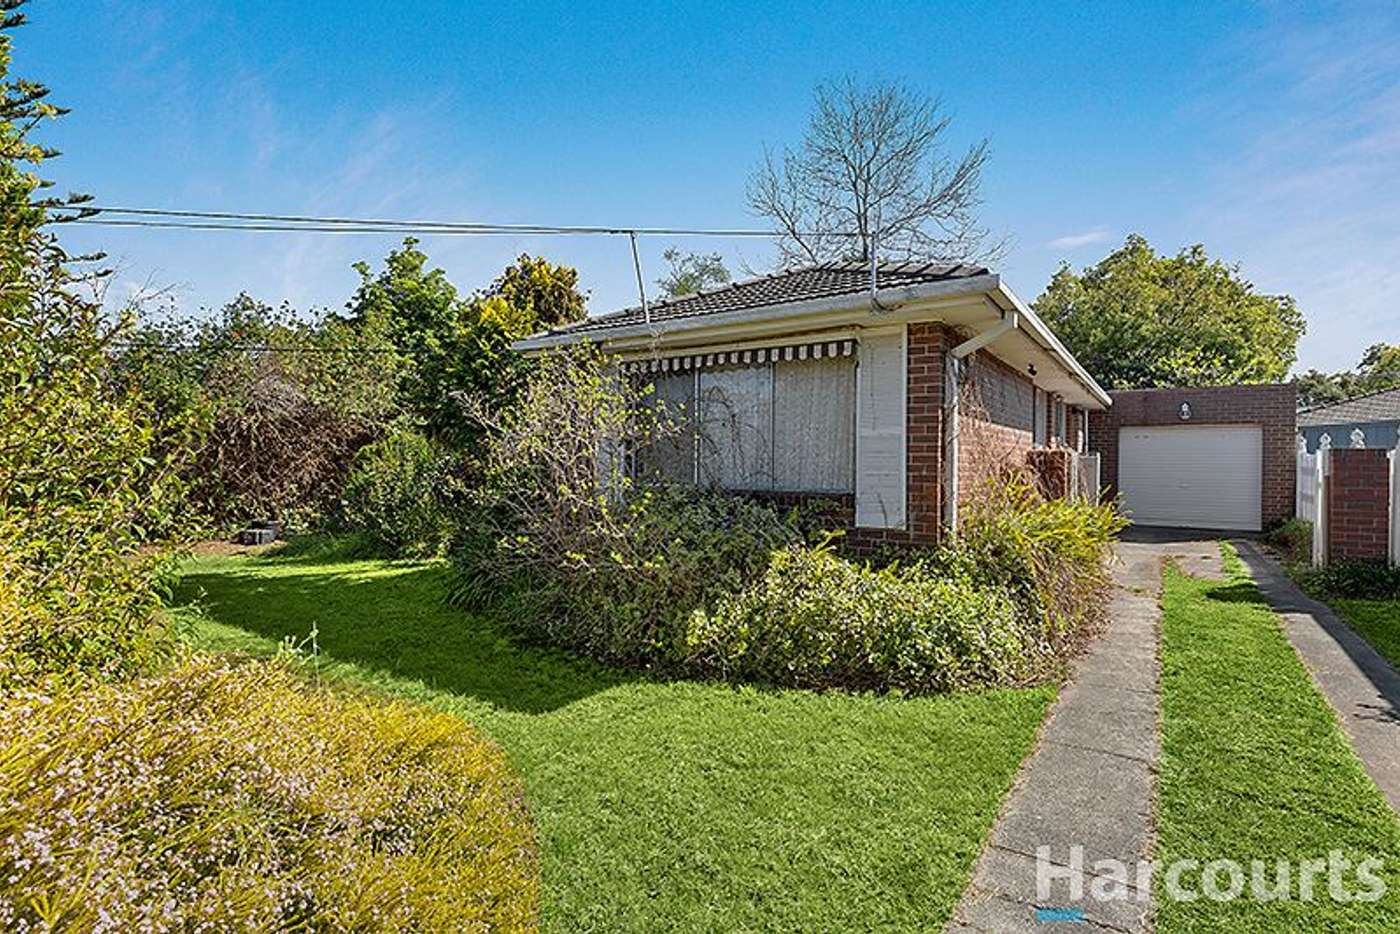 Main view of Homely house listing, 3 Mangana Drive, Mulgrave VIC 3170